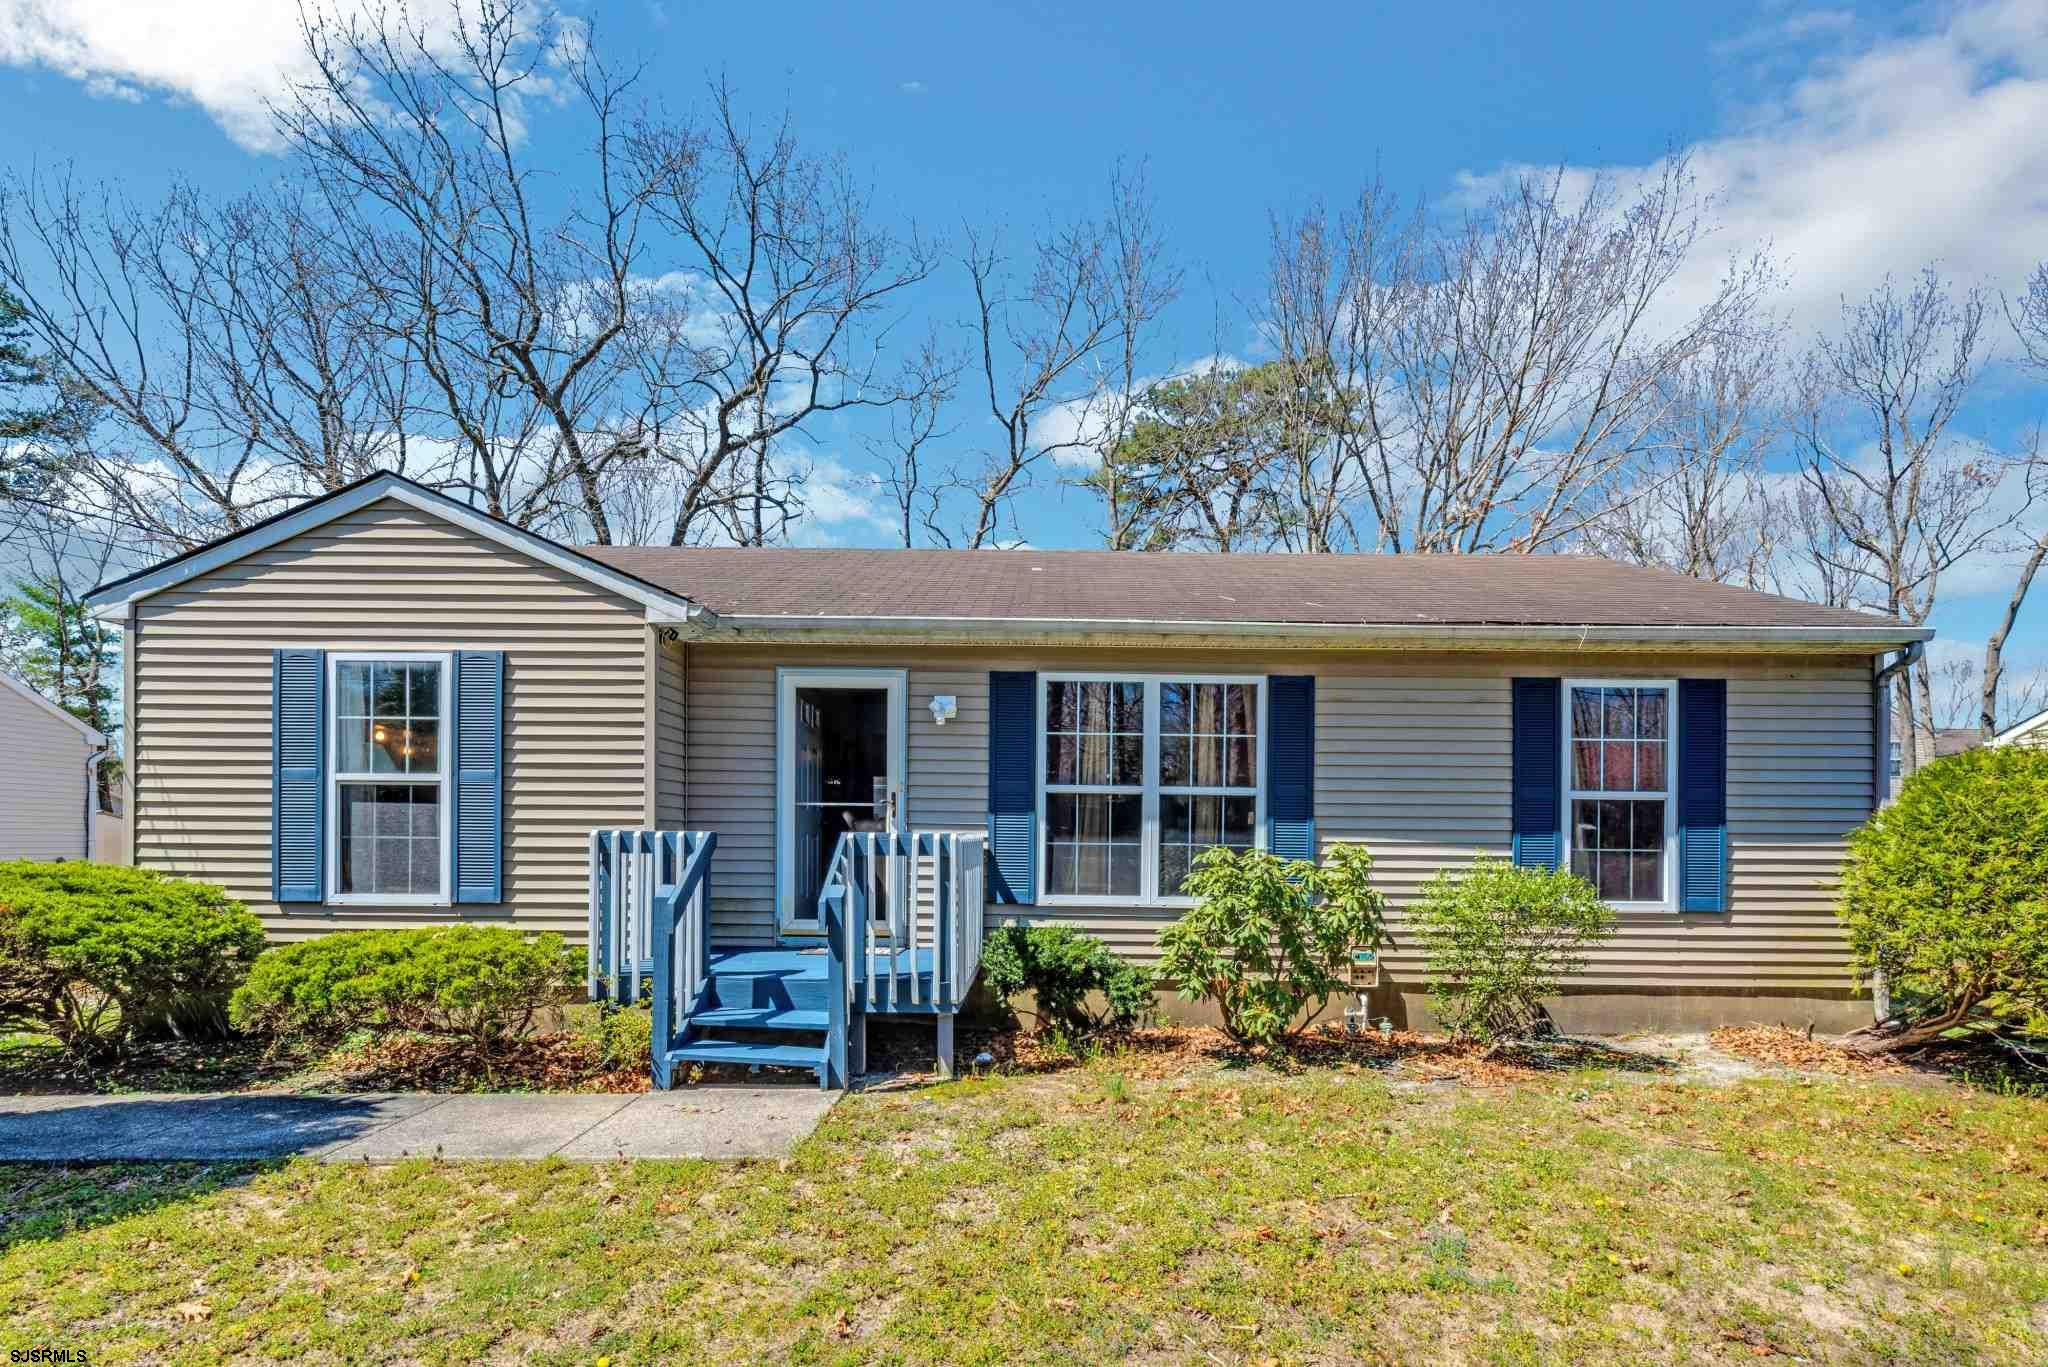 Wonderful 3 Bedroom 2 bath Ranch home in Galloway Township! This amazing property on large 75 x 125